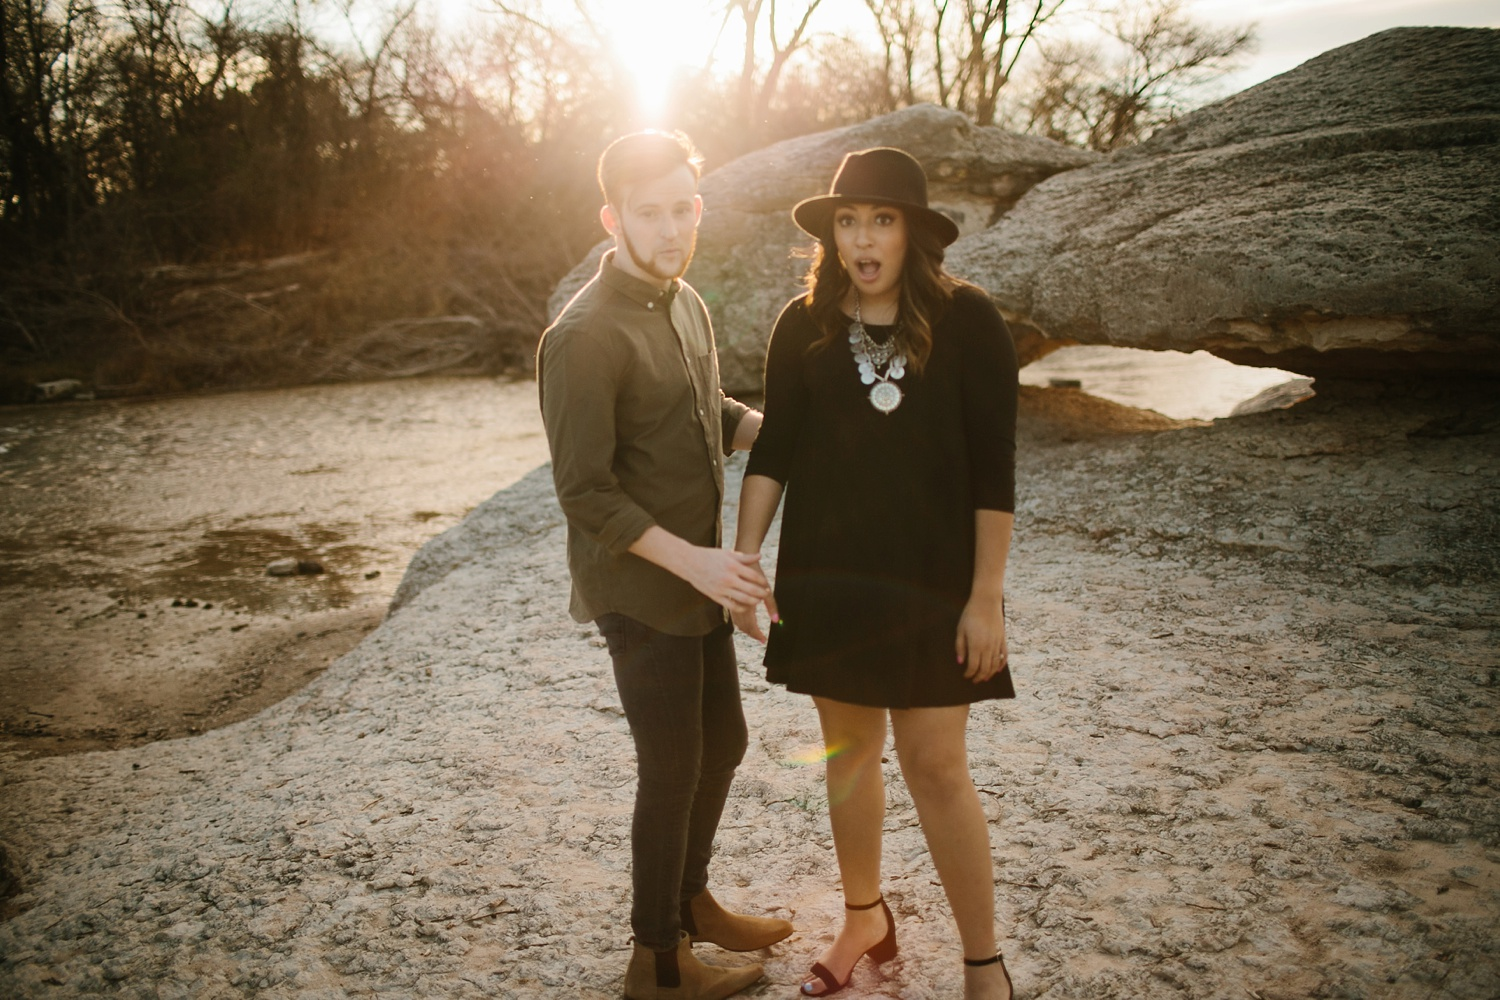 Grant + Lysette - floral dress engagement session by North Texas Wedding Photographer Rachel Meagan Photography051